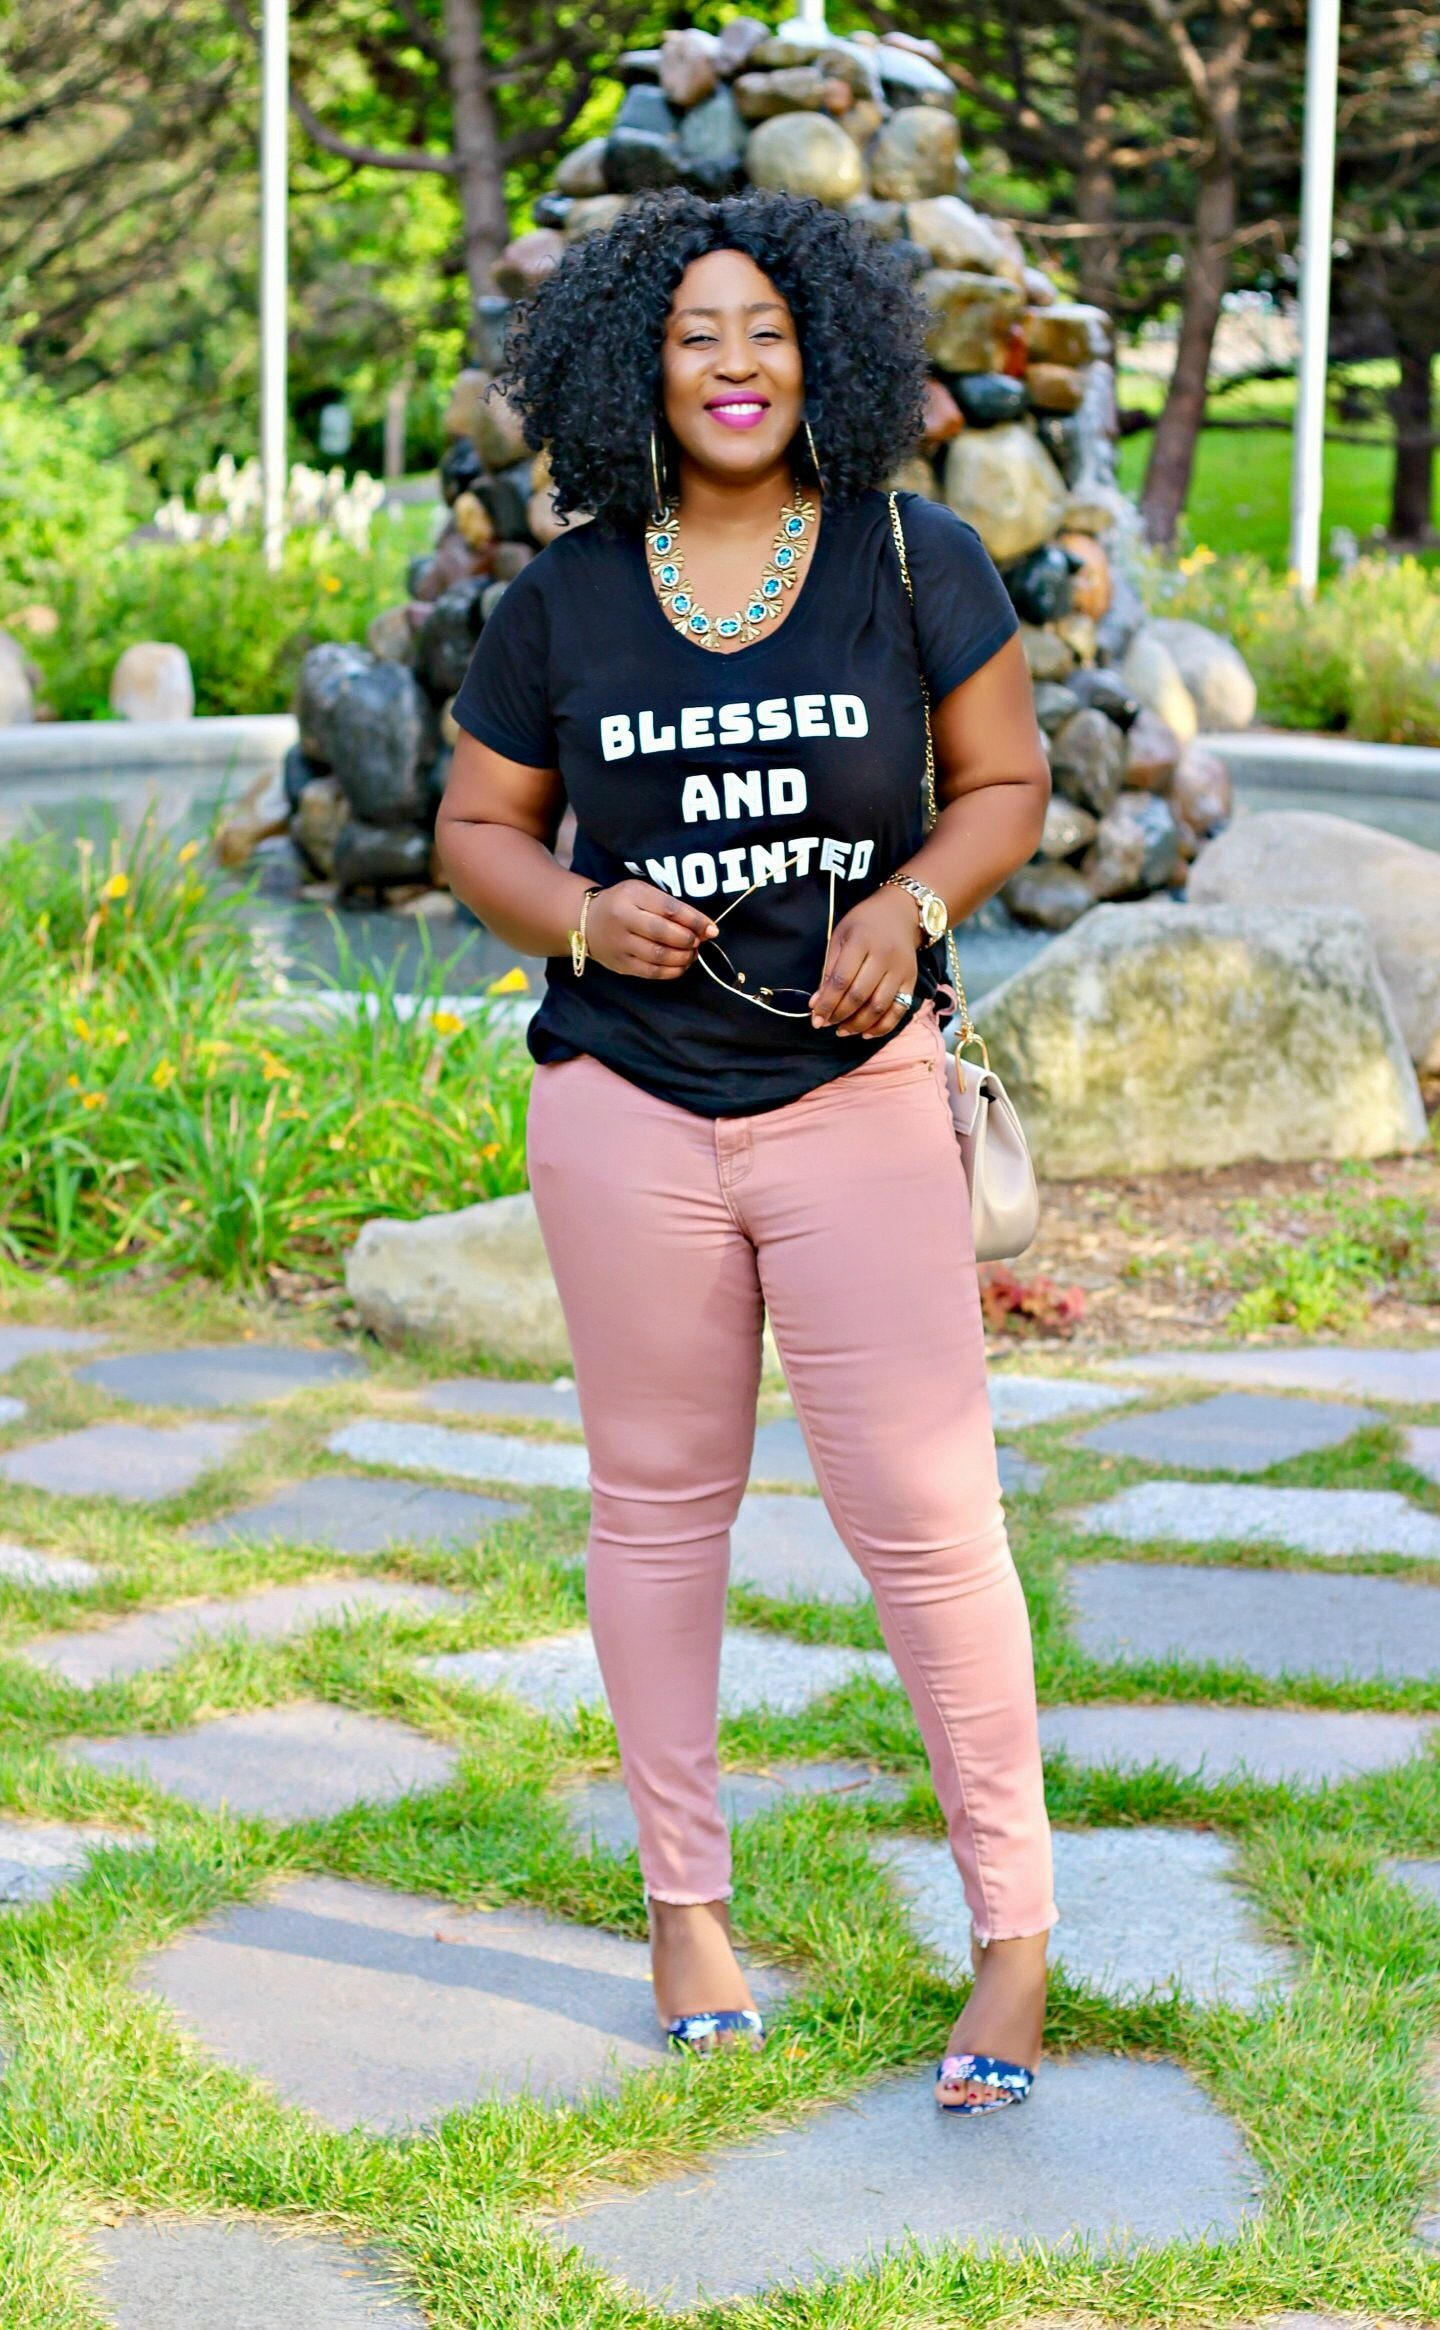 Blessed-and-anointed-tshirt